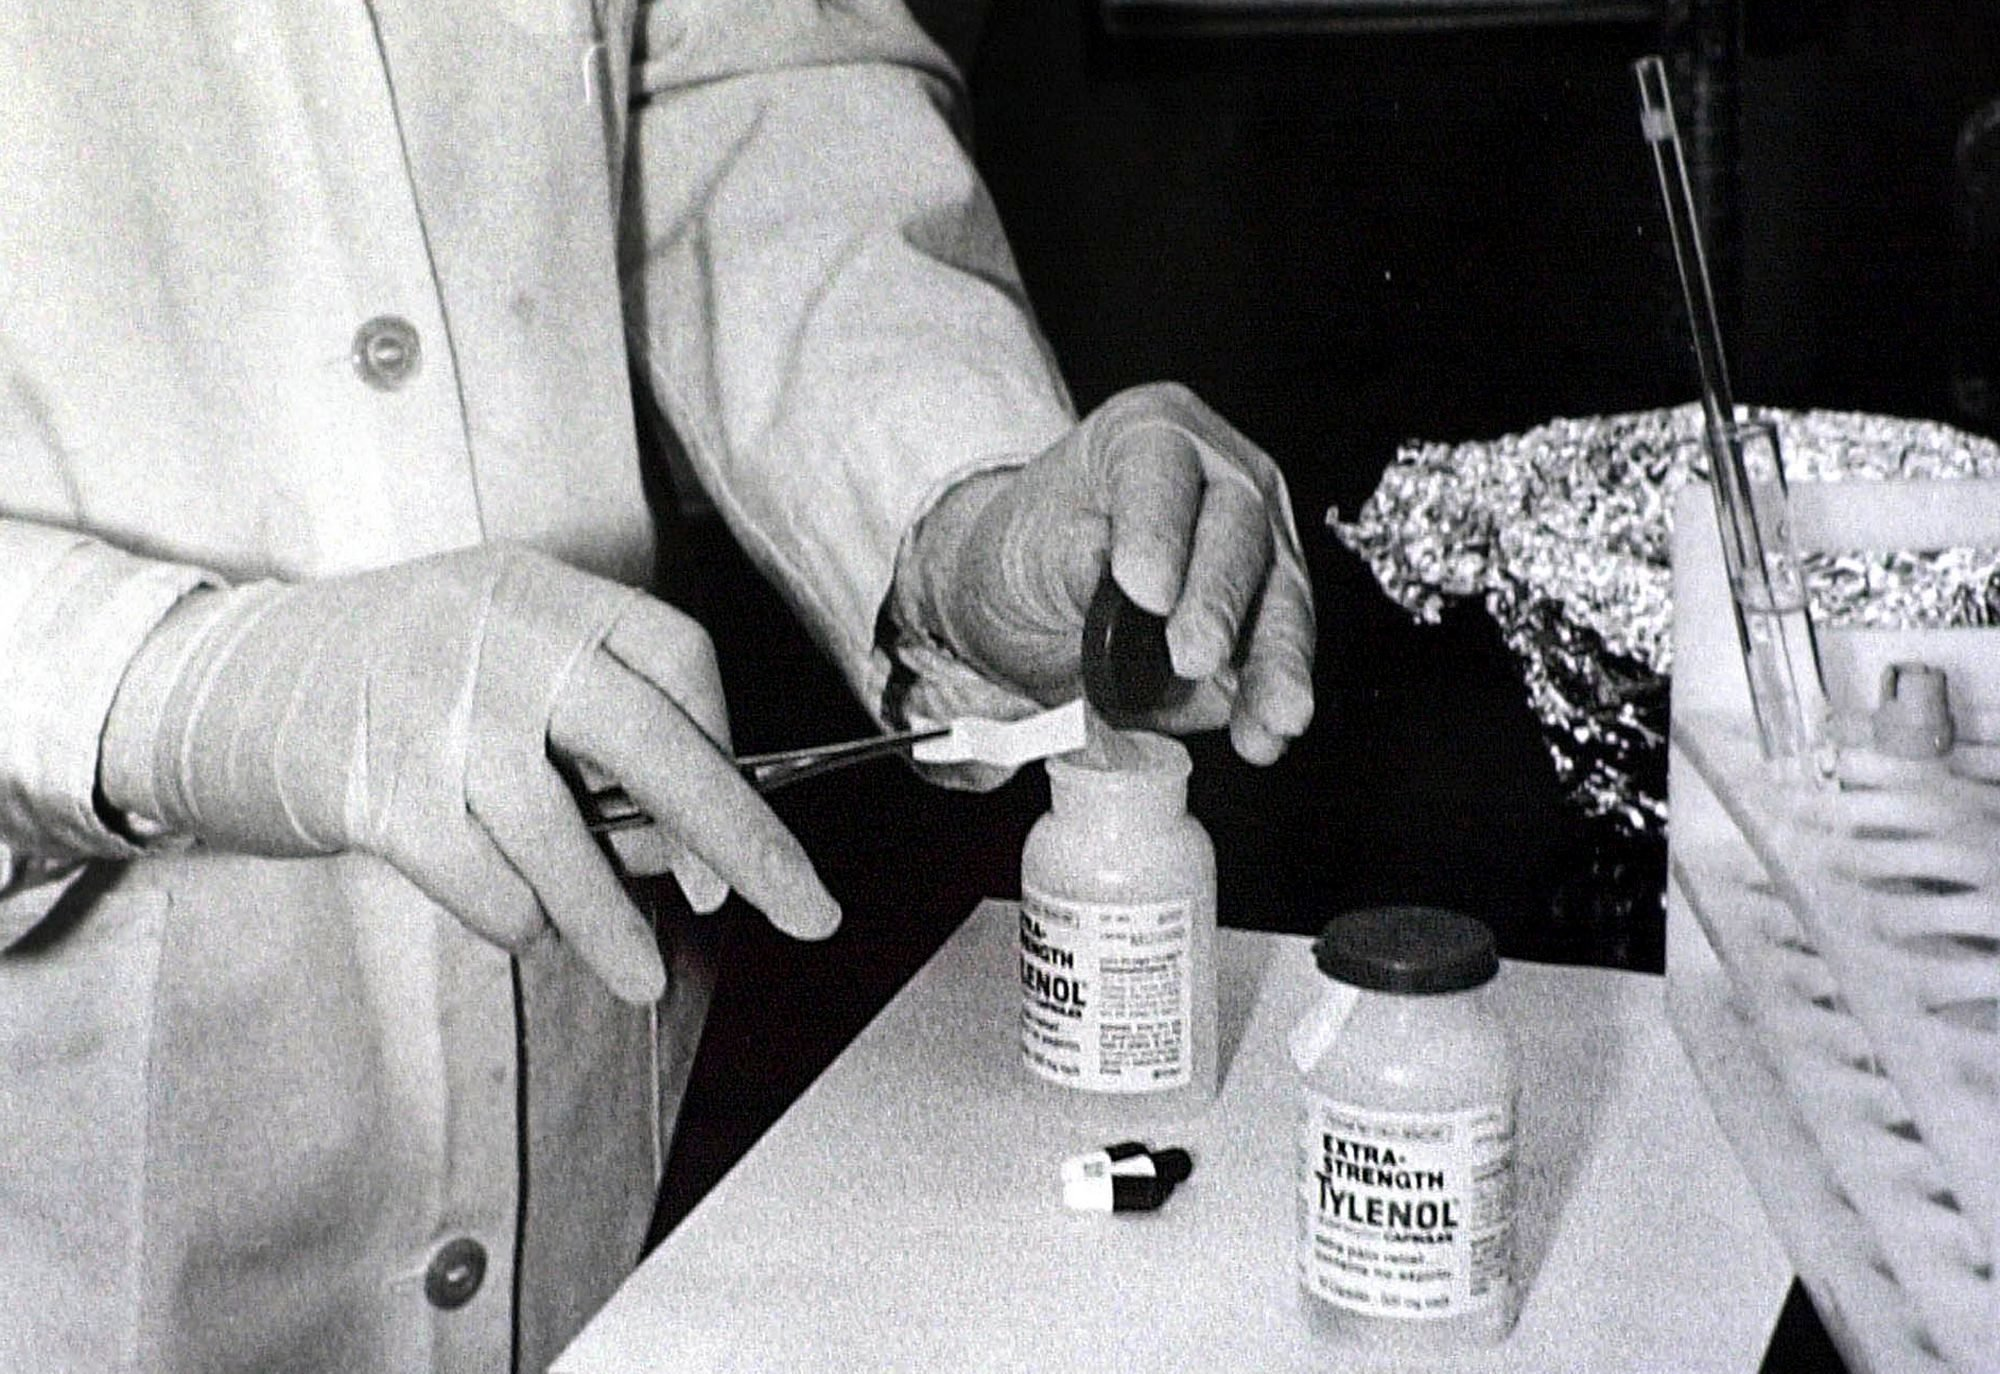 Bottles of Extra-Strength Tylenol are tested with a chemically treated paper that turns blue in the presence of cyanide at the Illinois Department of Health in Chicago. Arlington Heights, Ill., police say they'll take over the still-unsolved investigation into the deaths of seven people who took cyanide-laced Tylenol more than three decades ago. Local agencies will work together after the FBI decided to no longer lead the investigation into the 1982 Chicago area poisonings. The poisoned Tylenol was consumed over three days in Chicago and four suburbs, triggering a national scare and a huge recall Tylenol Poisonings, Chicago, USA